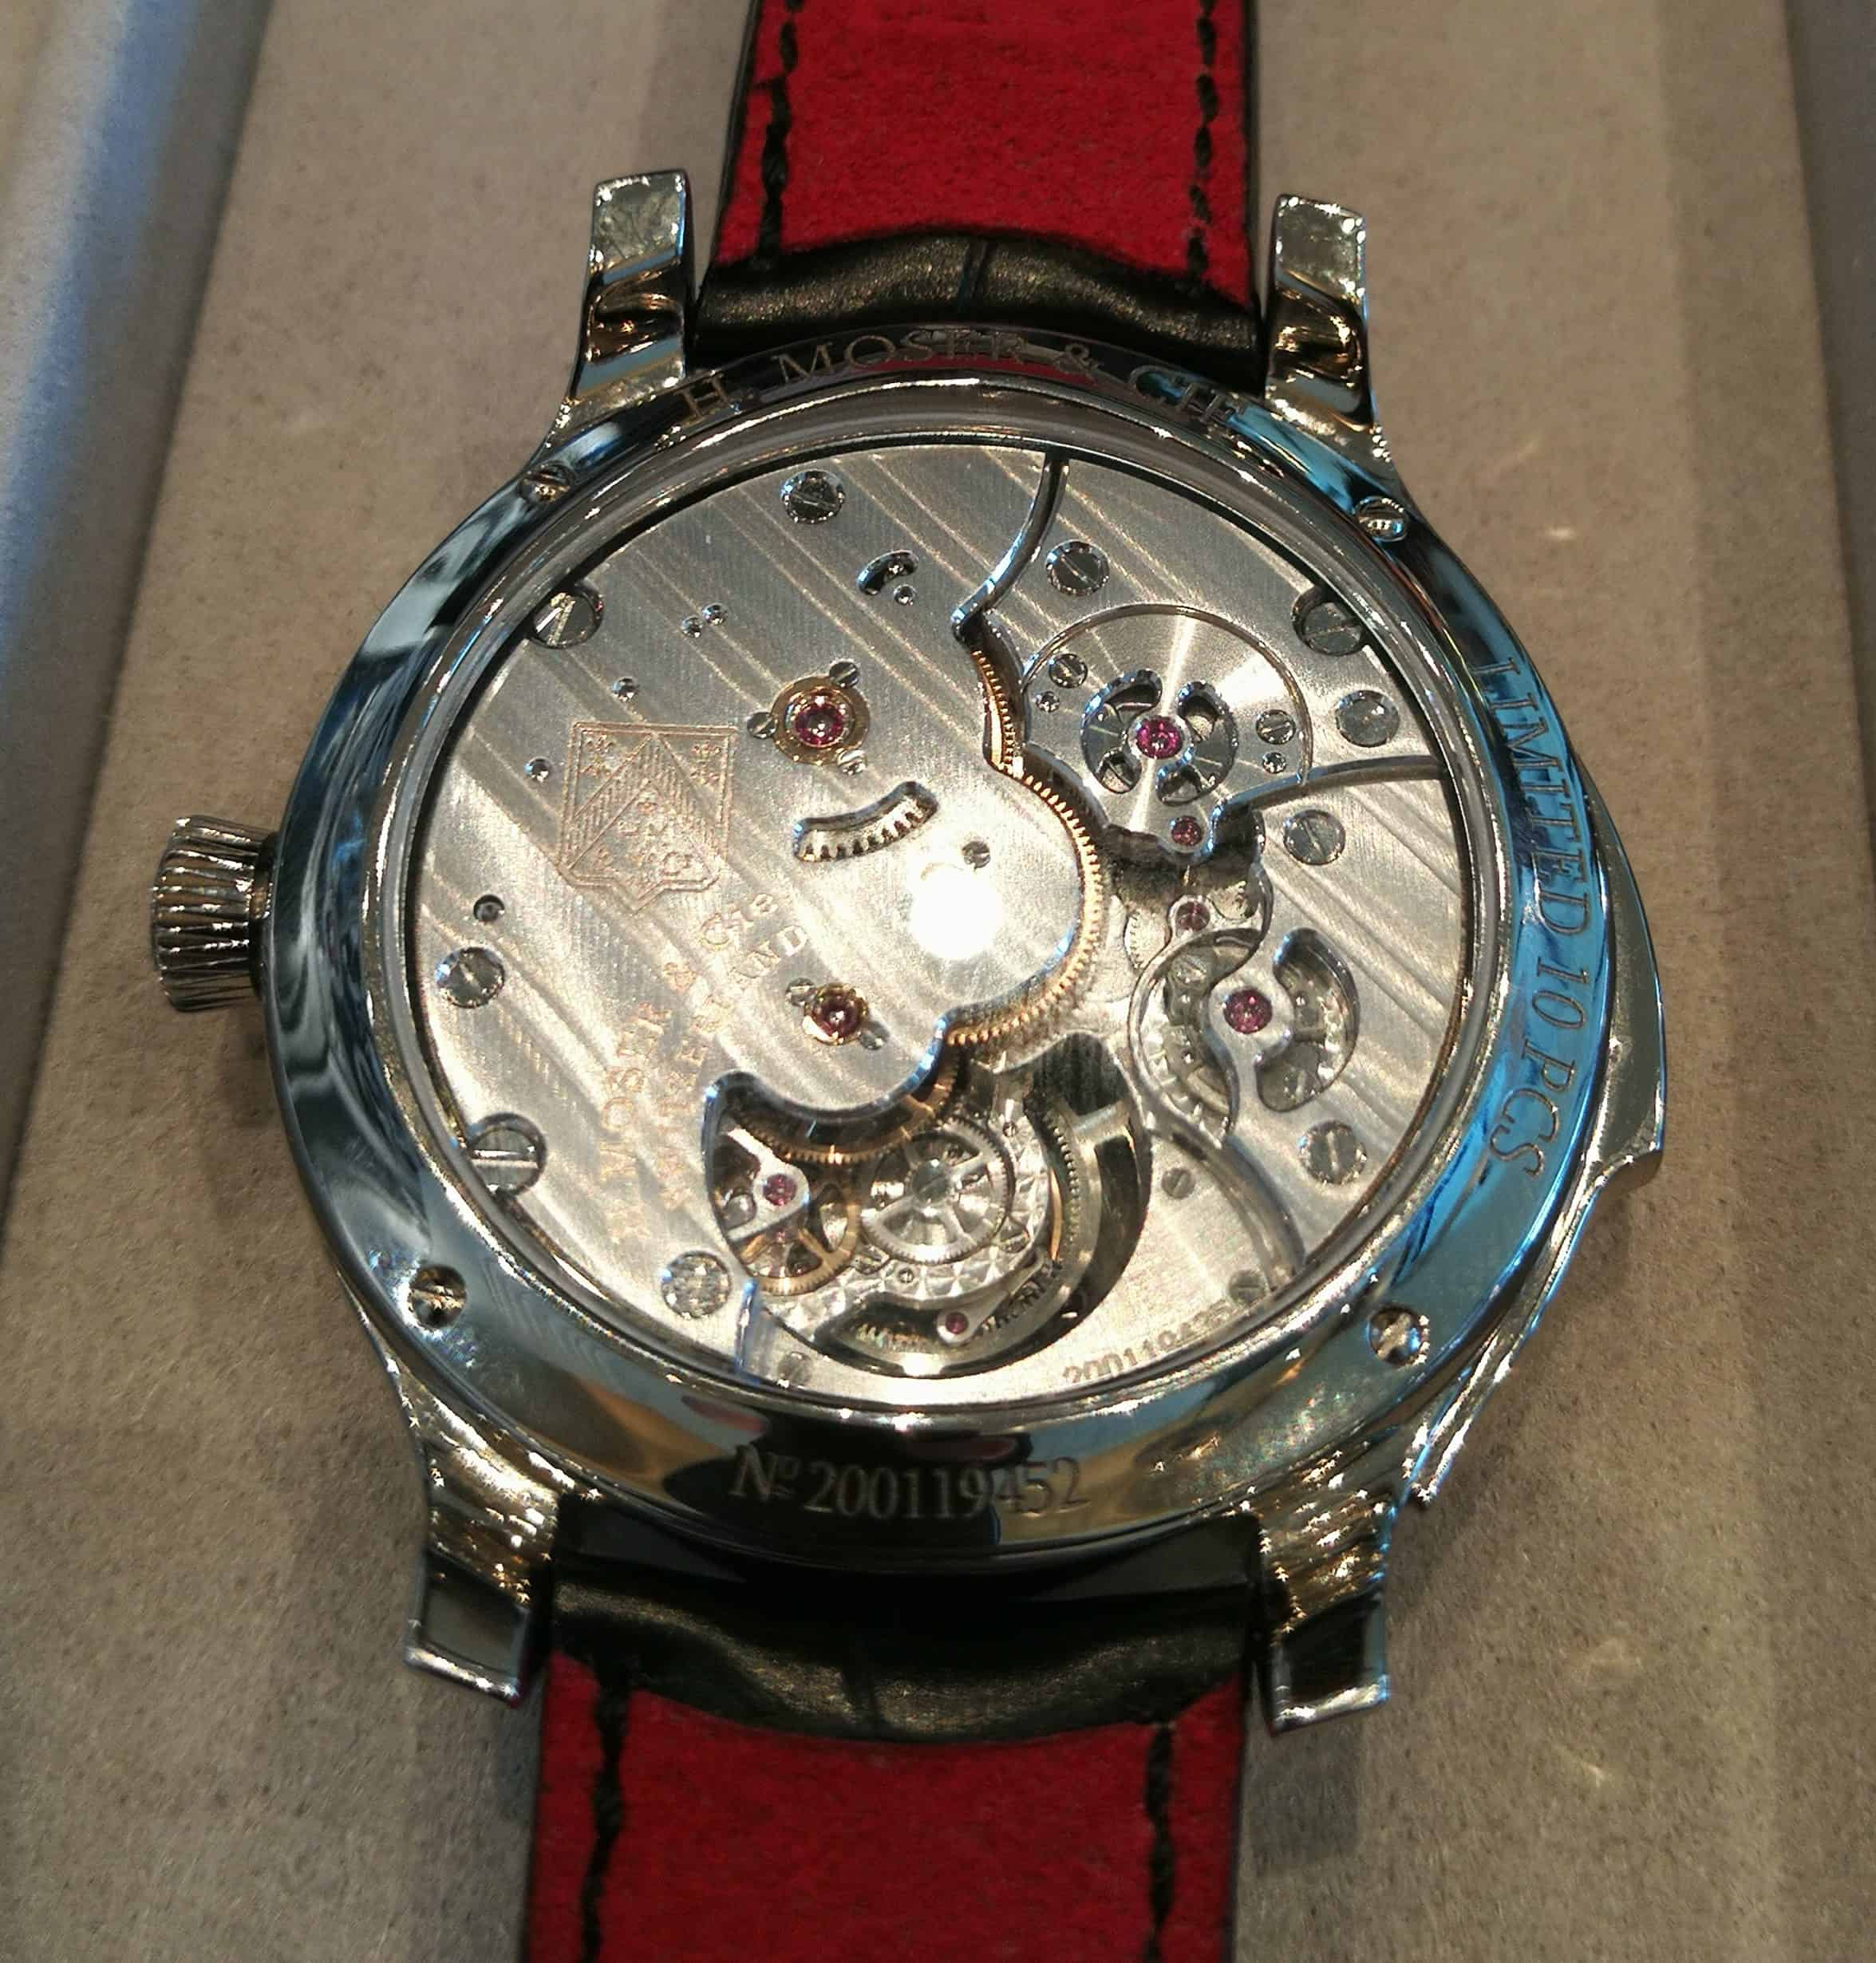 Endeavour Concept Minute Repeater Tourbillon case back